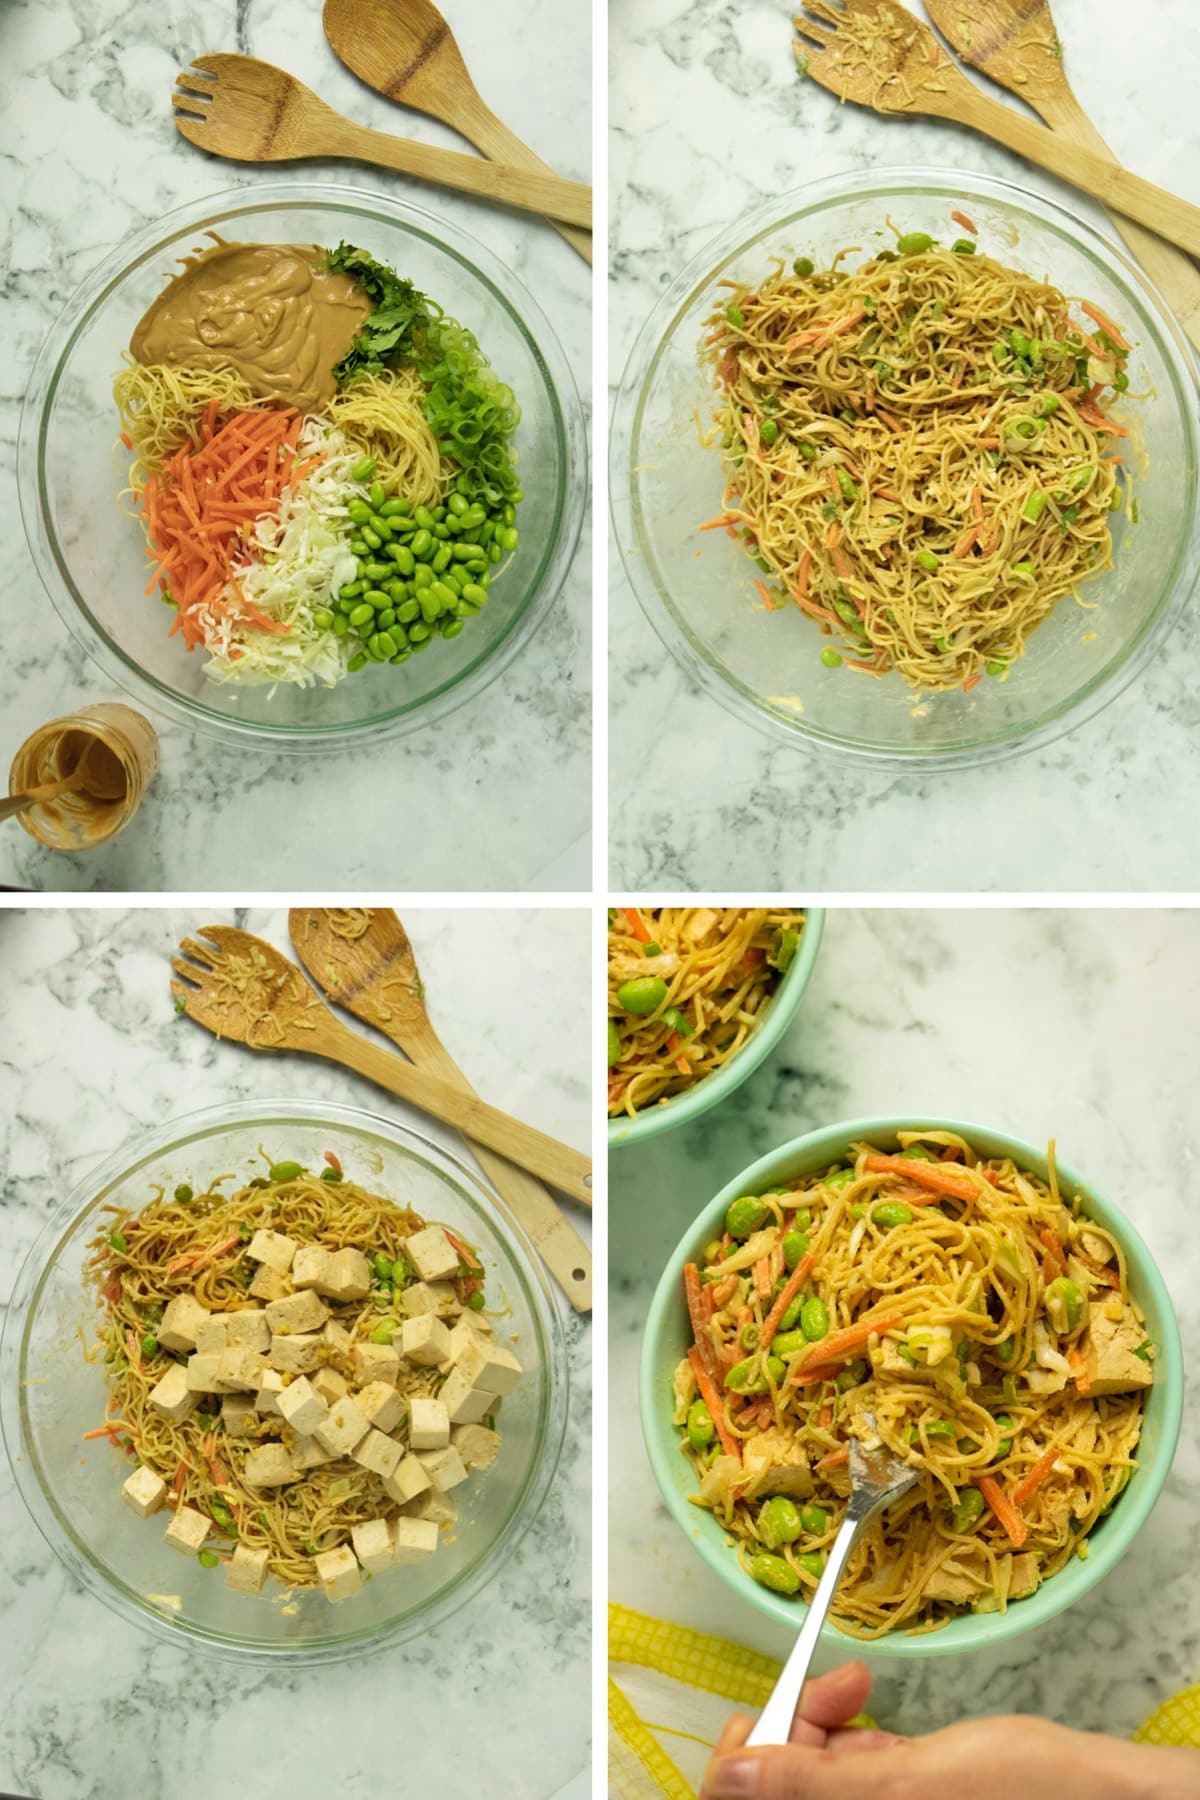 image collage of noodles with veggies and sauce on top, tossed together, with tofu added, and then with a hand taking a bite with a fork